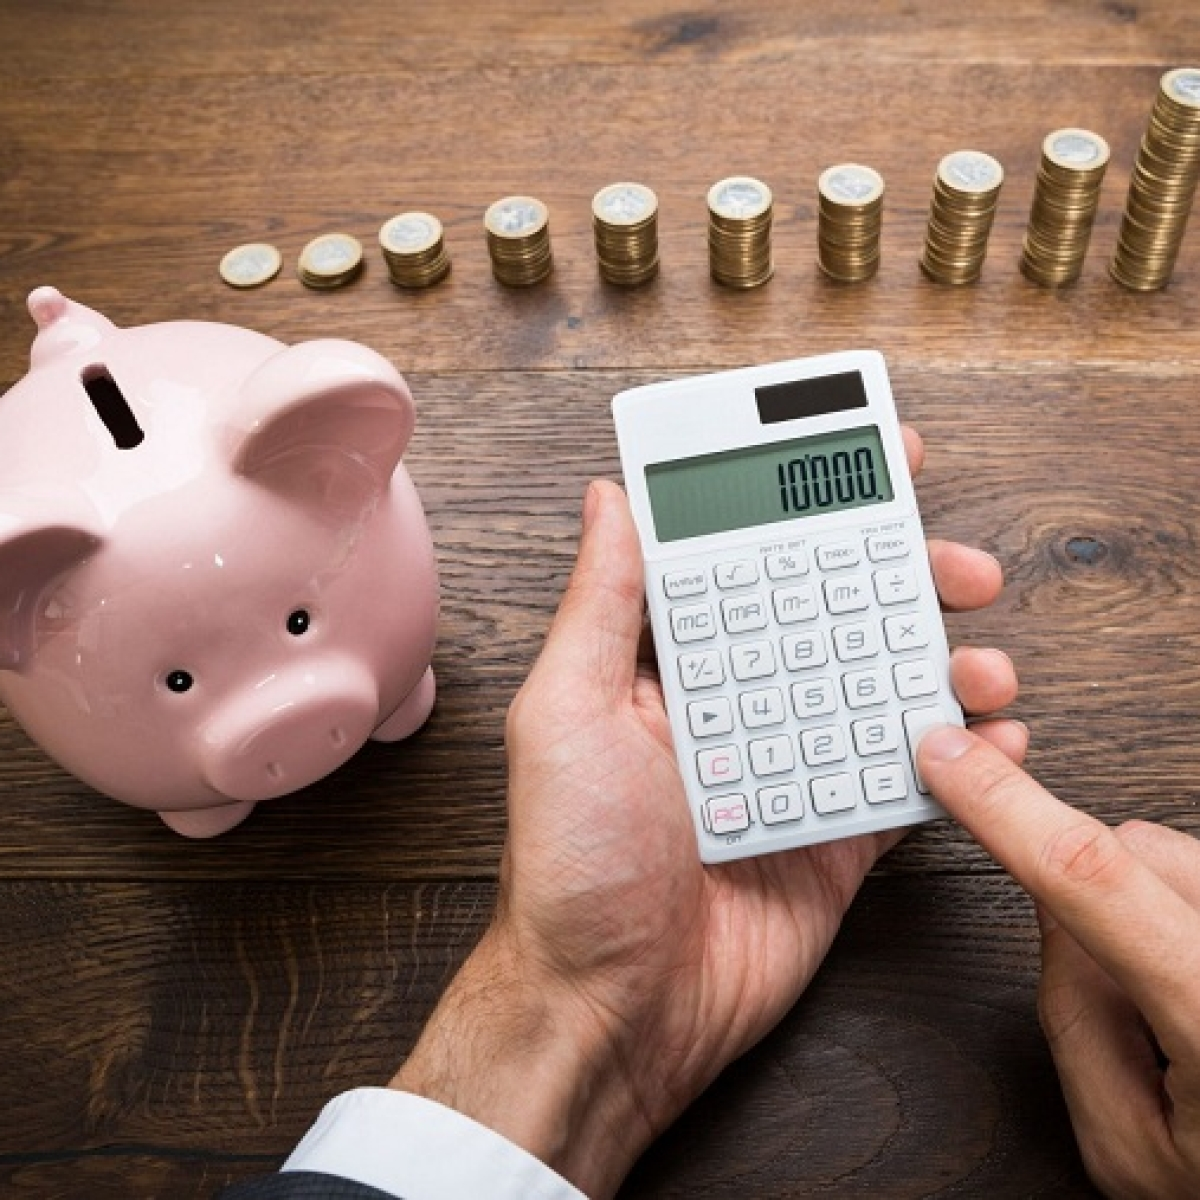 Planning to set up emergency funds? Here are some tips that can help you get started